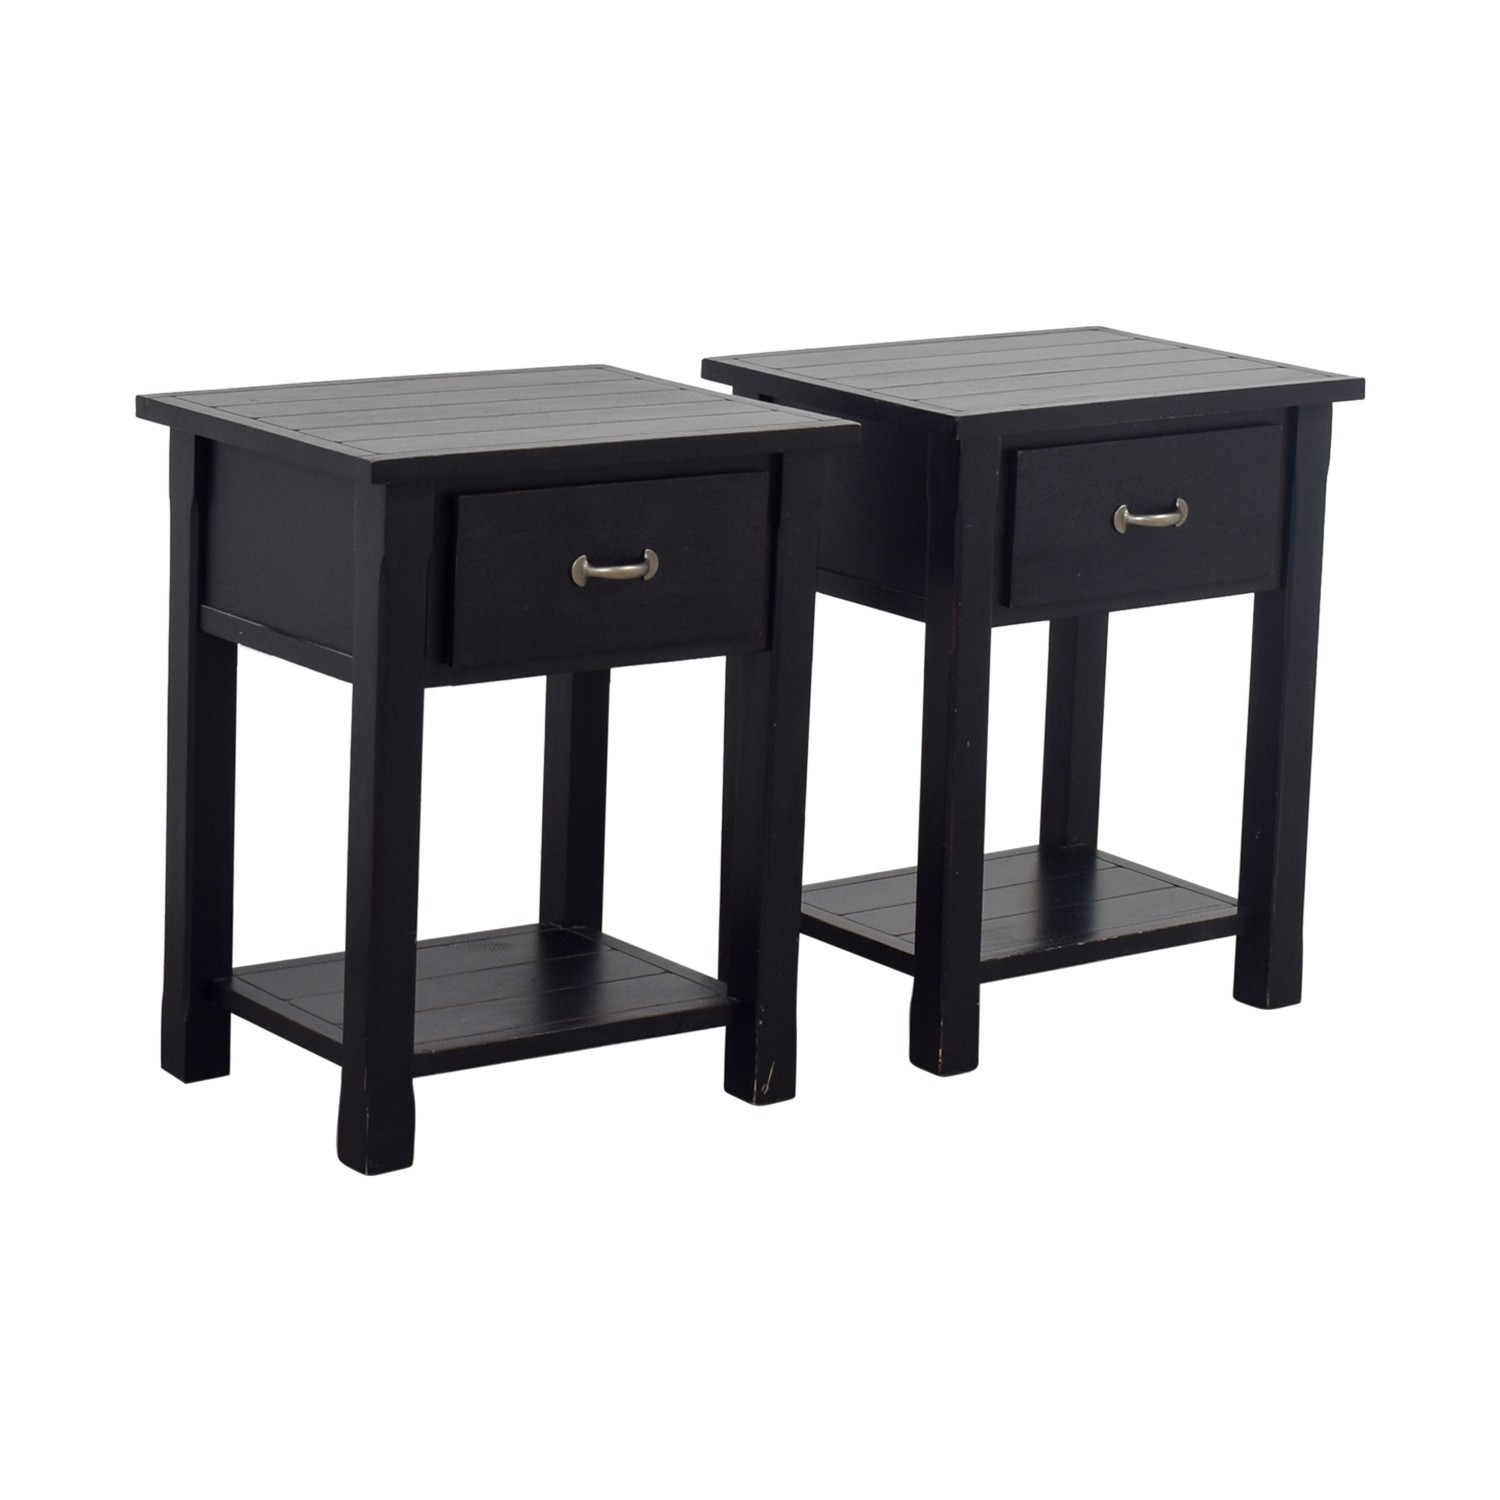 Pottery Barn Pottery Barn Black Single Drawer Side Tables nyc